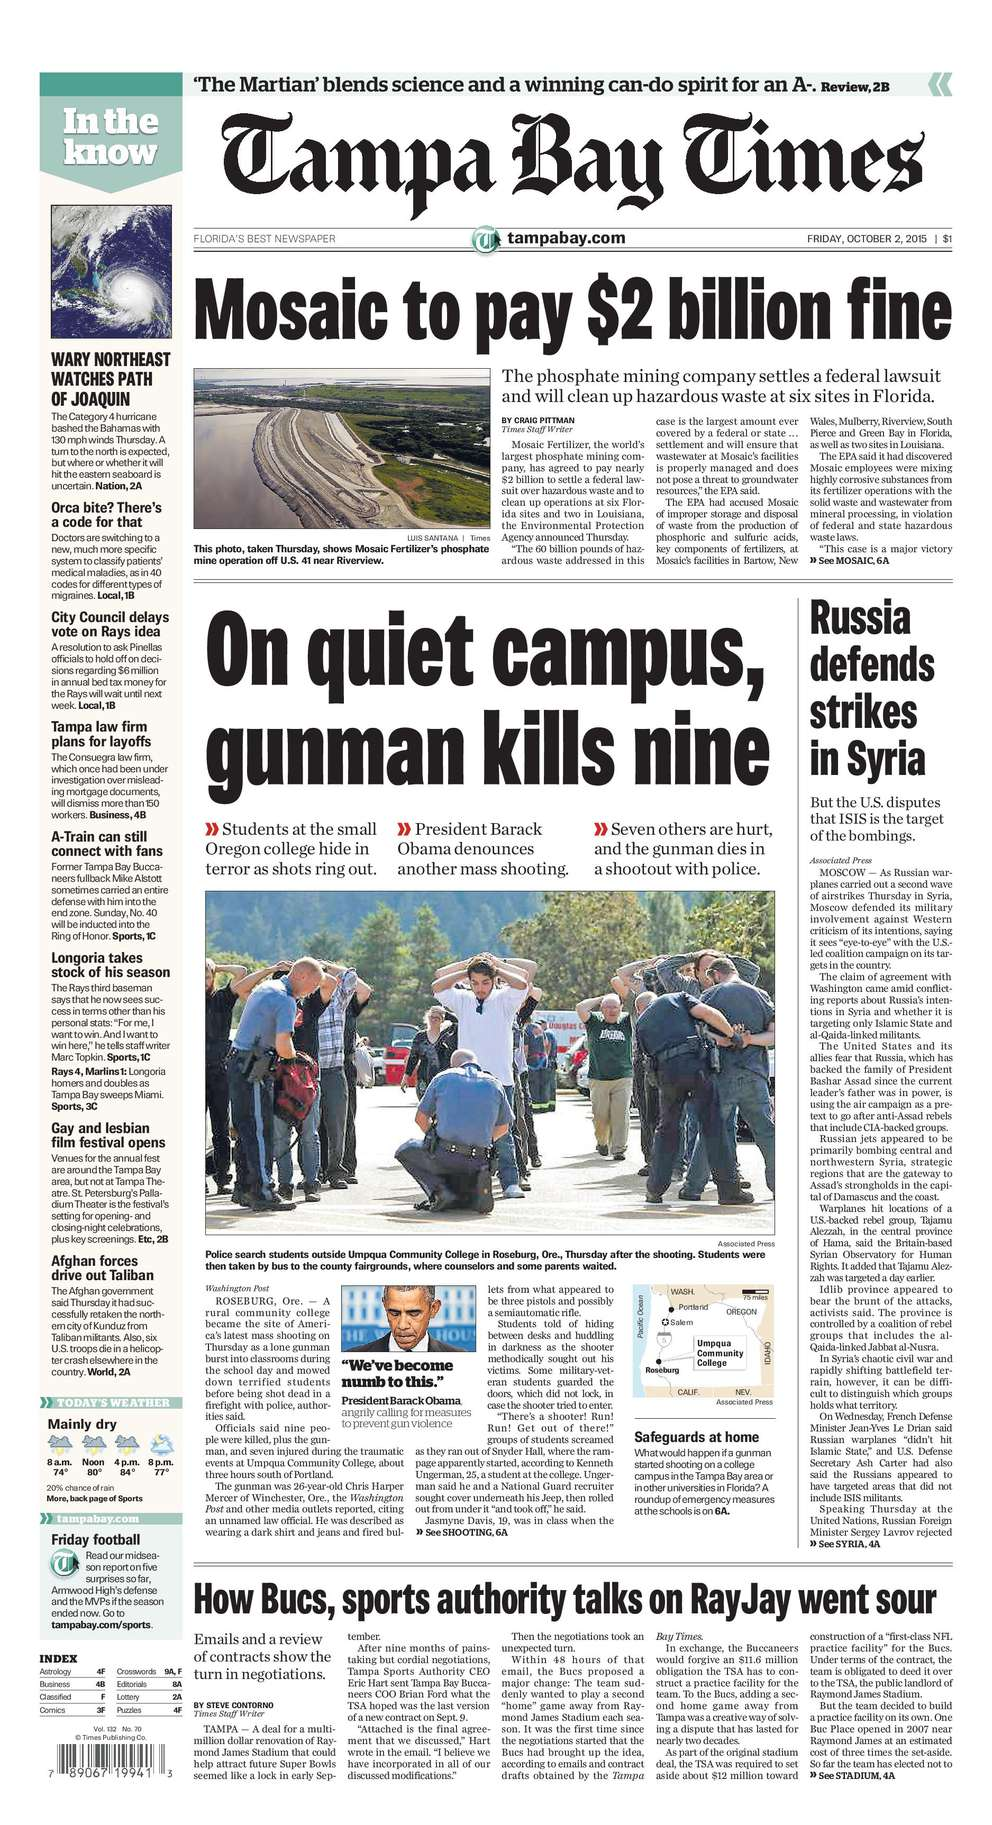 Oct. 1, 2015: 9 killed. A gunman killed nine people at Umpqua Community College in Roseburg, Ore. He was wounded in a shootout with police, then committed suicide.